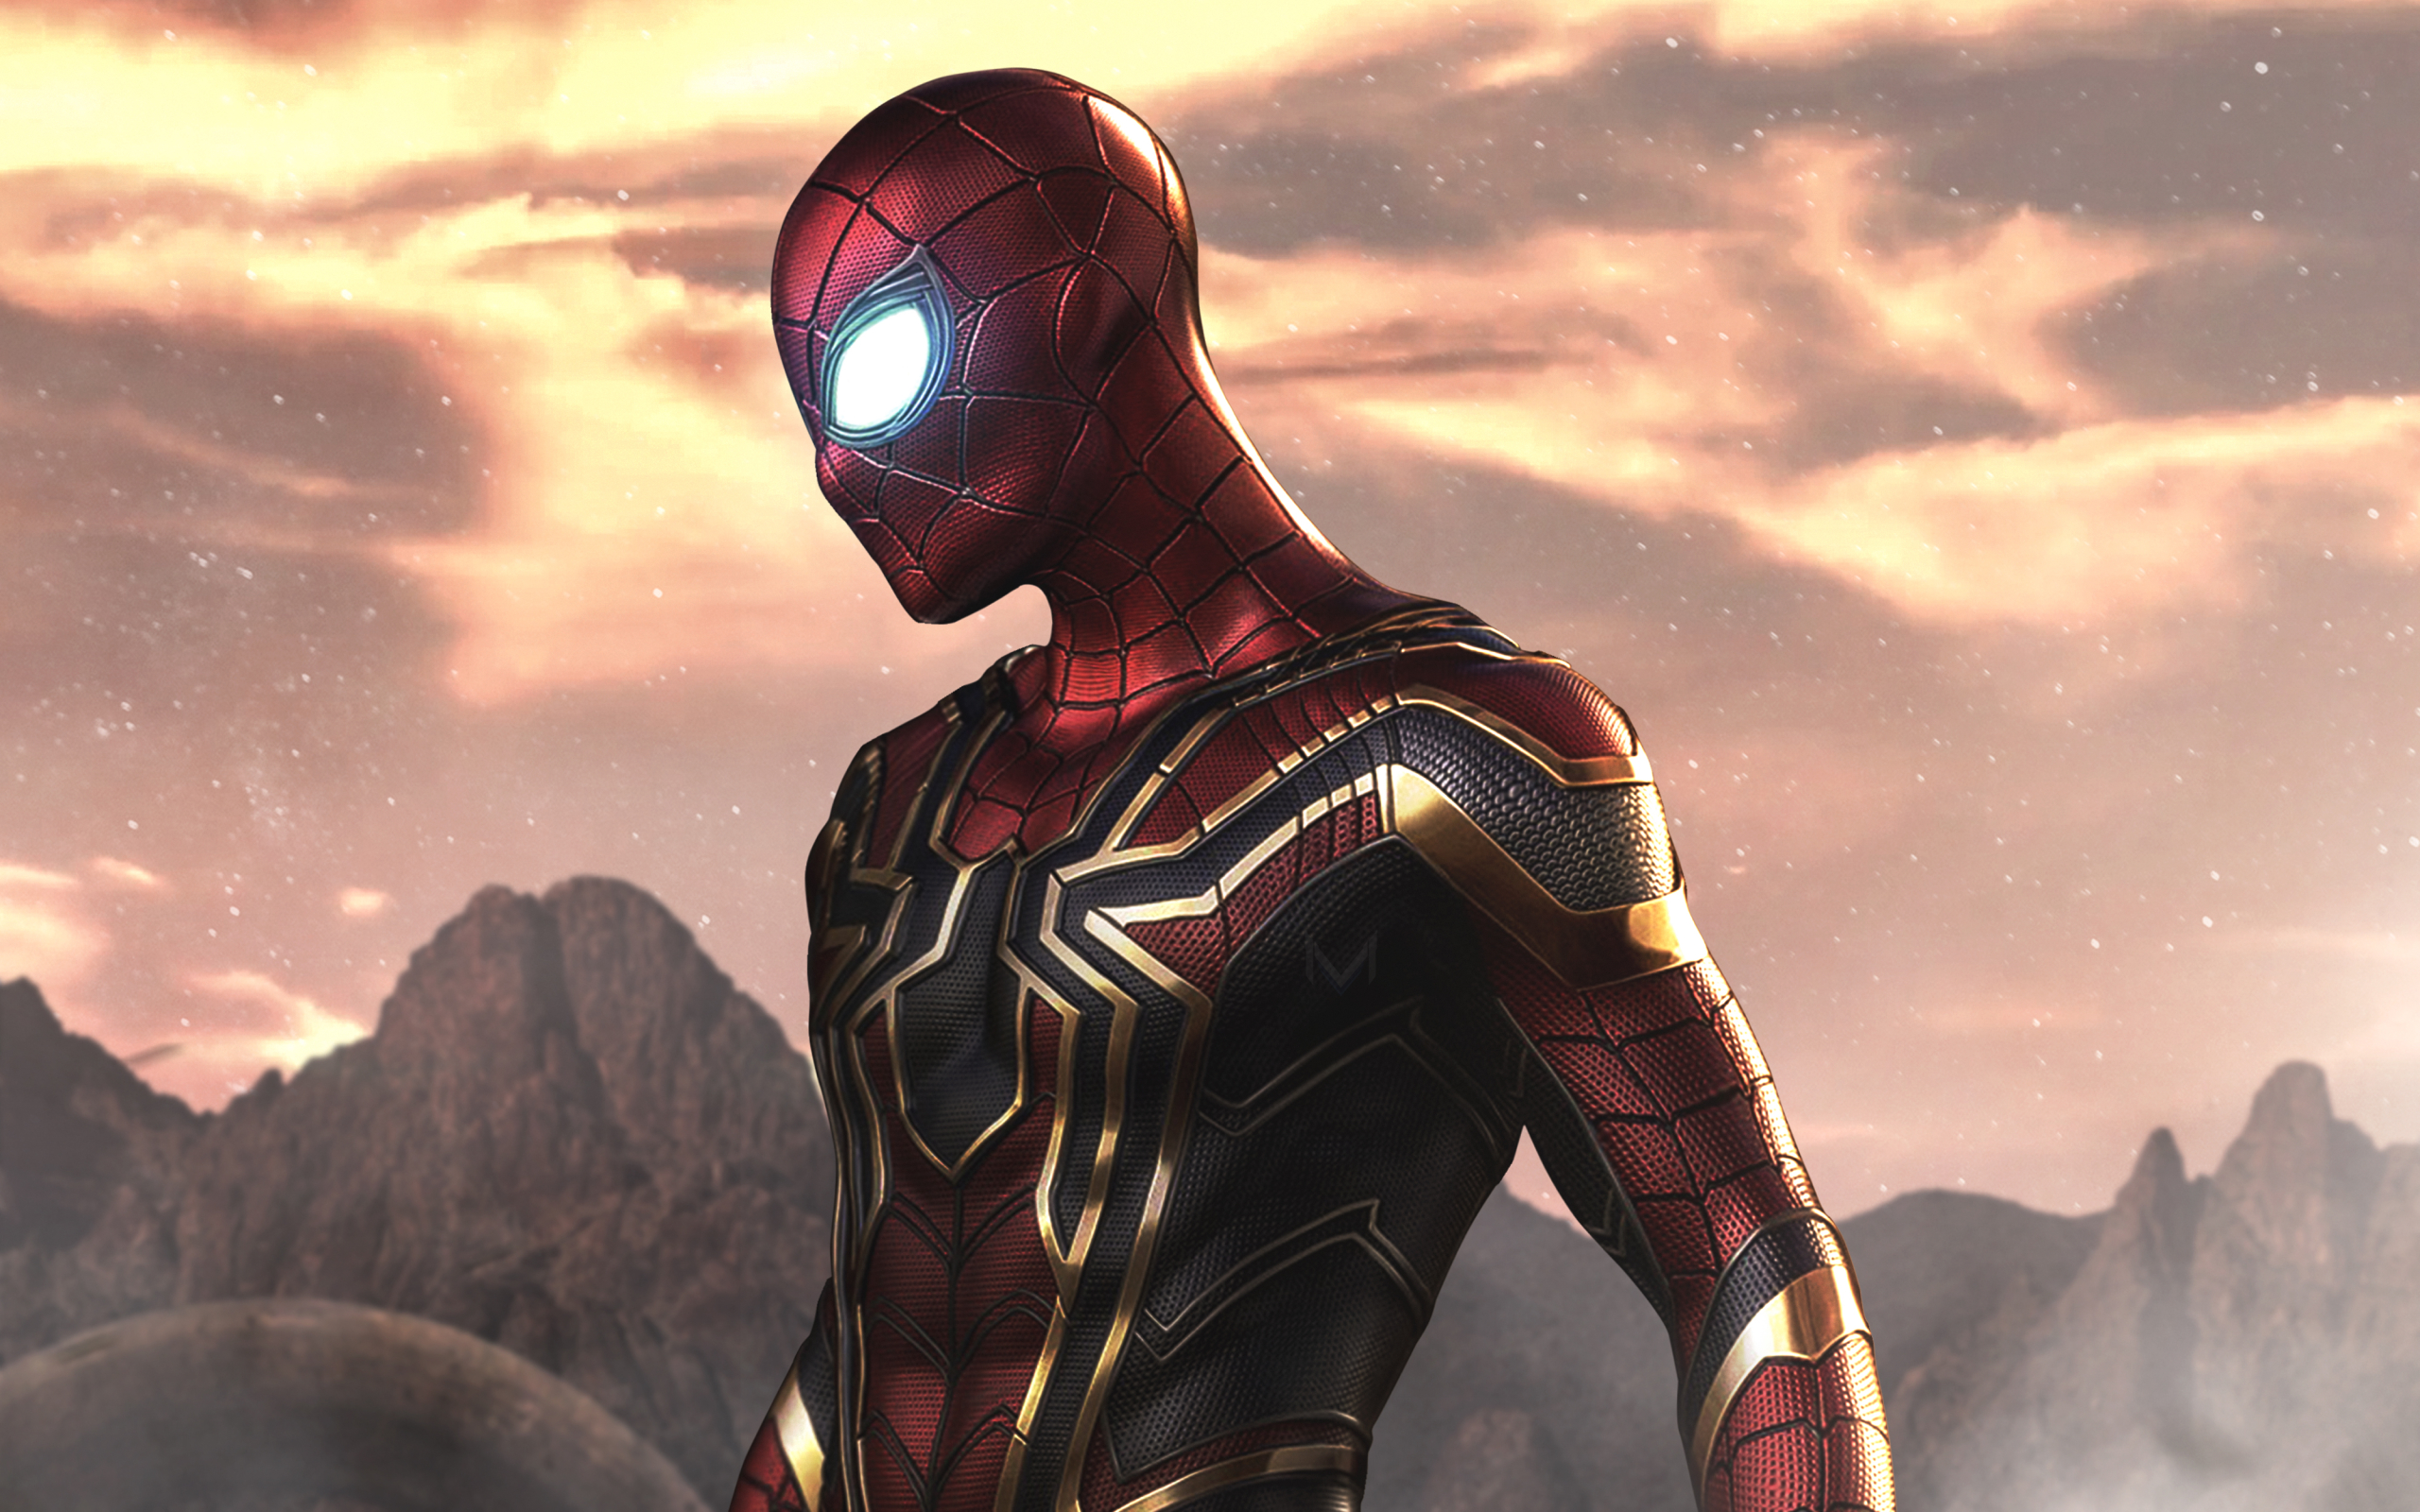 Wallpaper Avengers Infinity War Iron Spider Marvel Comics